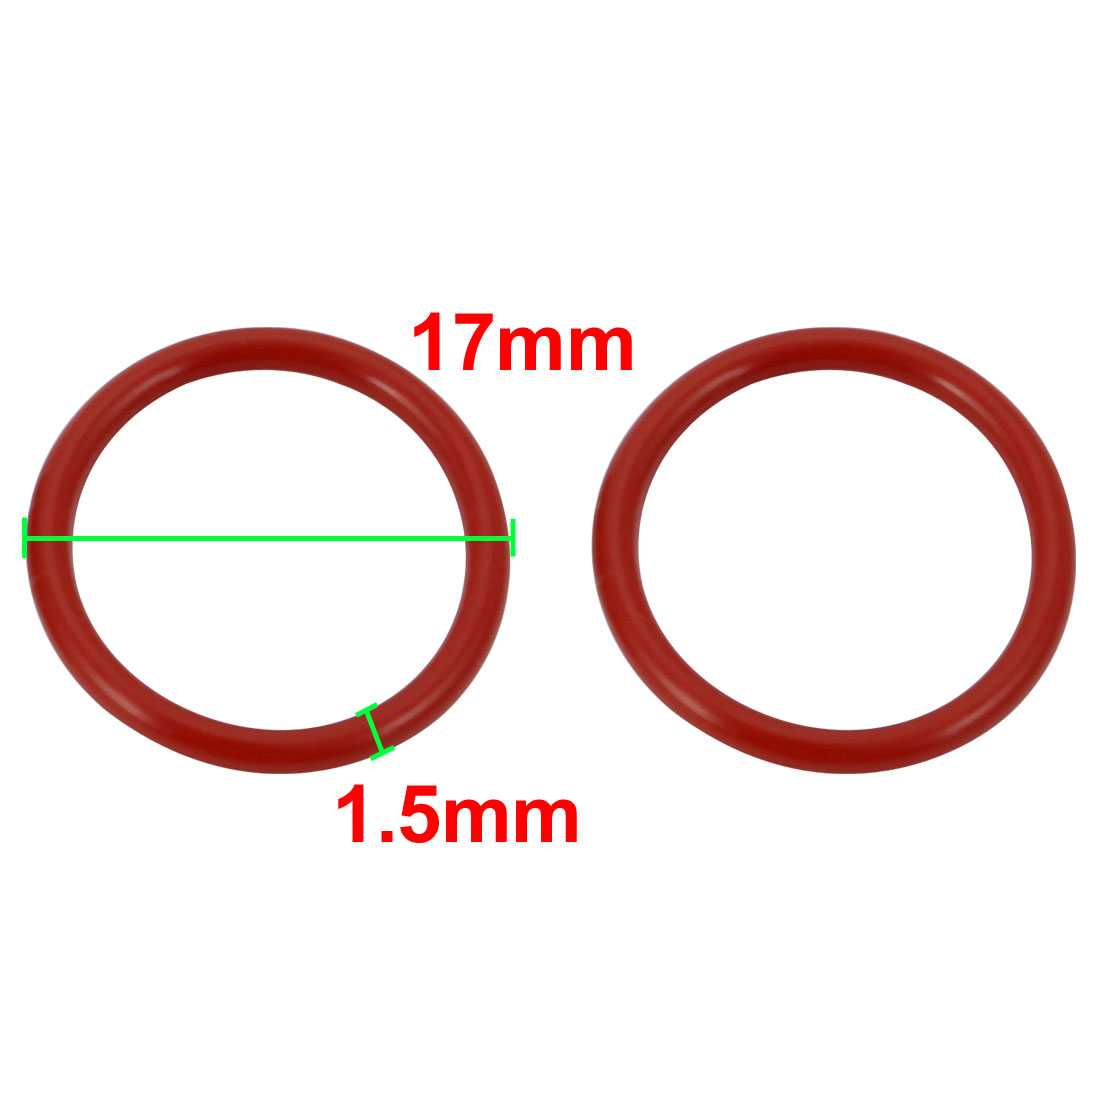 40pcs Red 17mm Outer Dia 1.5mm Thickness Sealing Ring O-shape Rubber Grommet - image 1 of 2